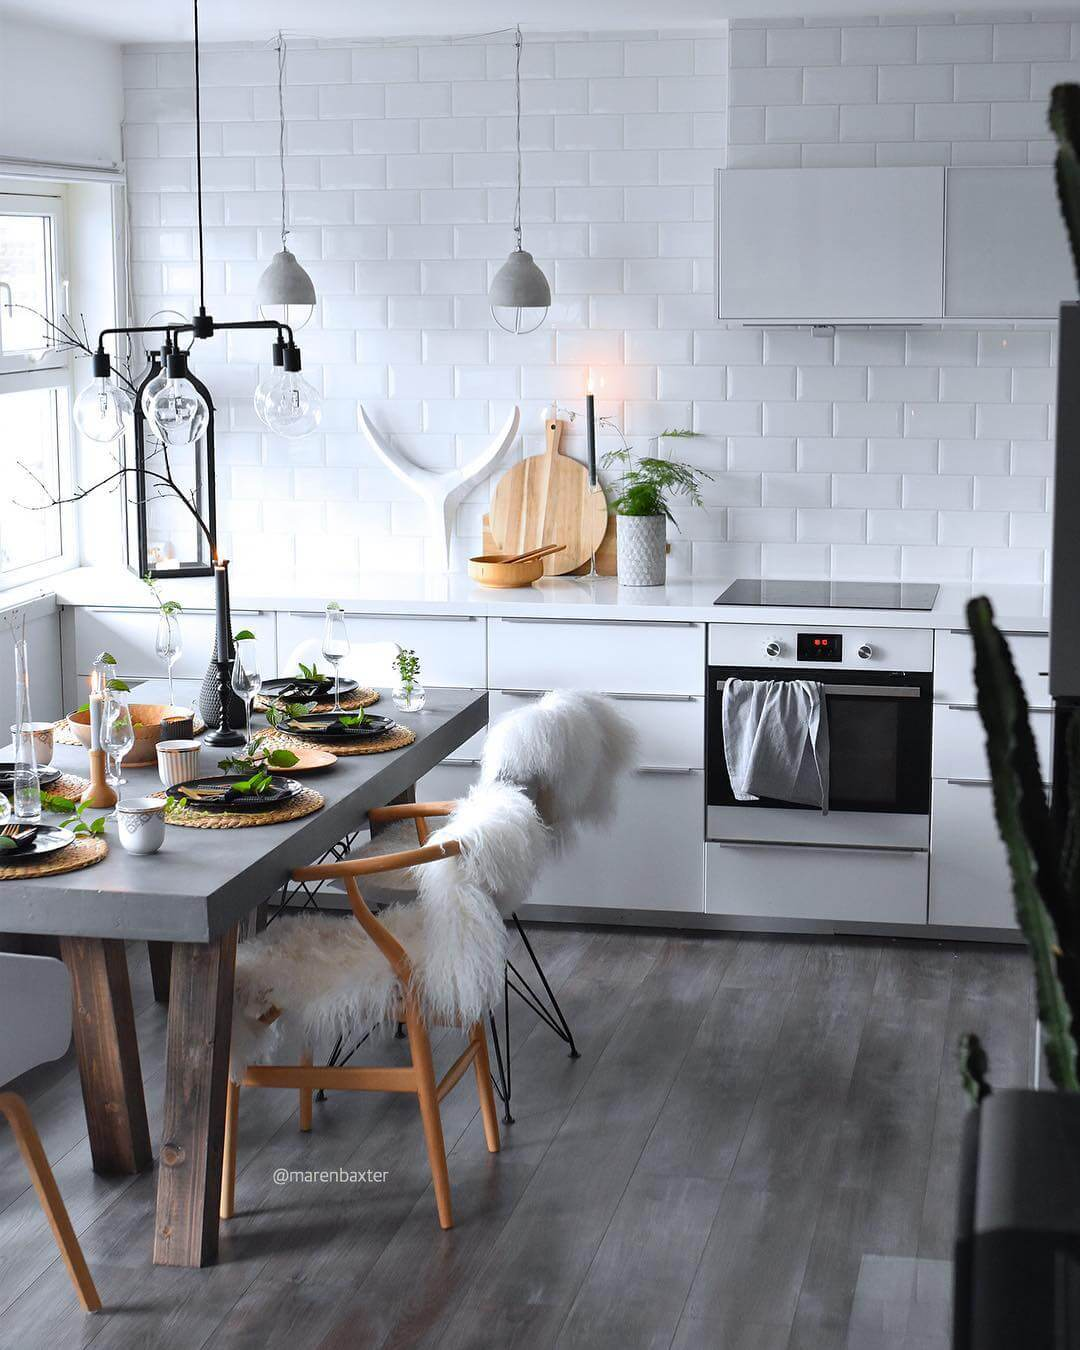 Did you know you've been using Pinterest wrong this whole time? It's true! Here's how to use Pinterest properly for interior inspiration on www.lovetohome.co.uk Image credit: @marenbaxter